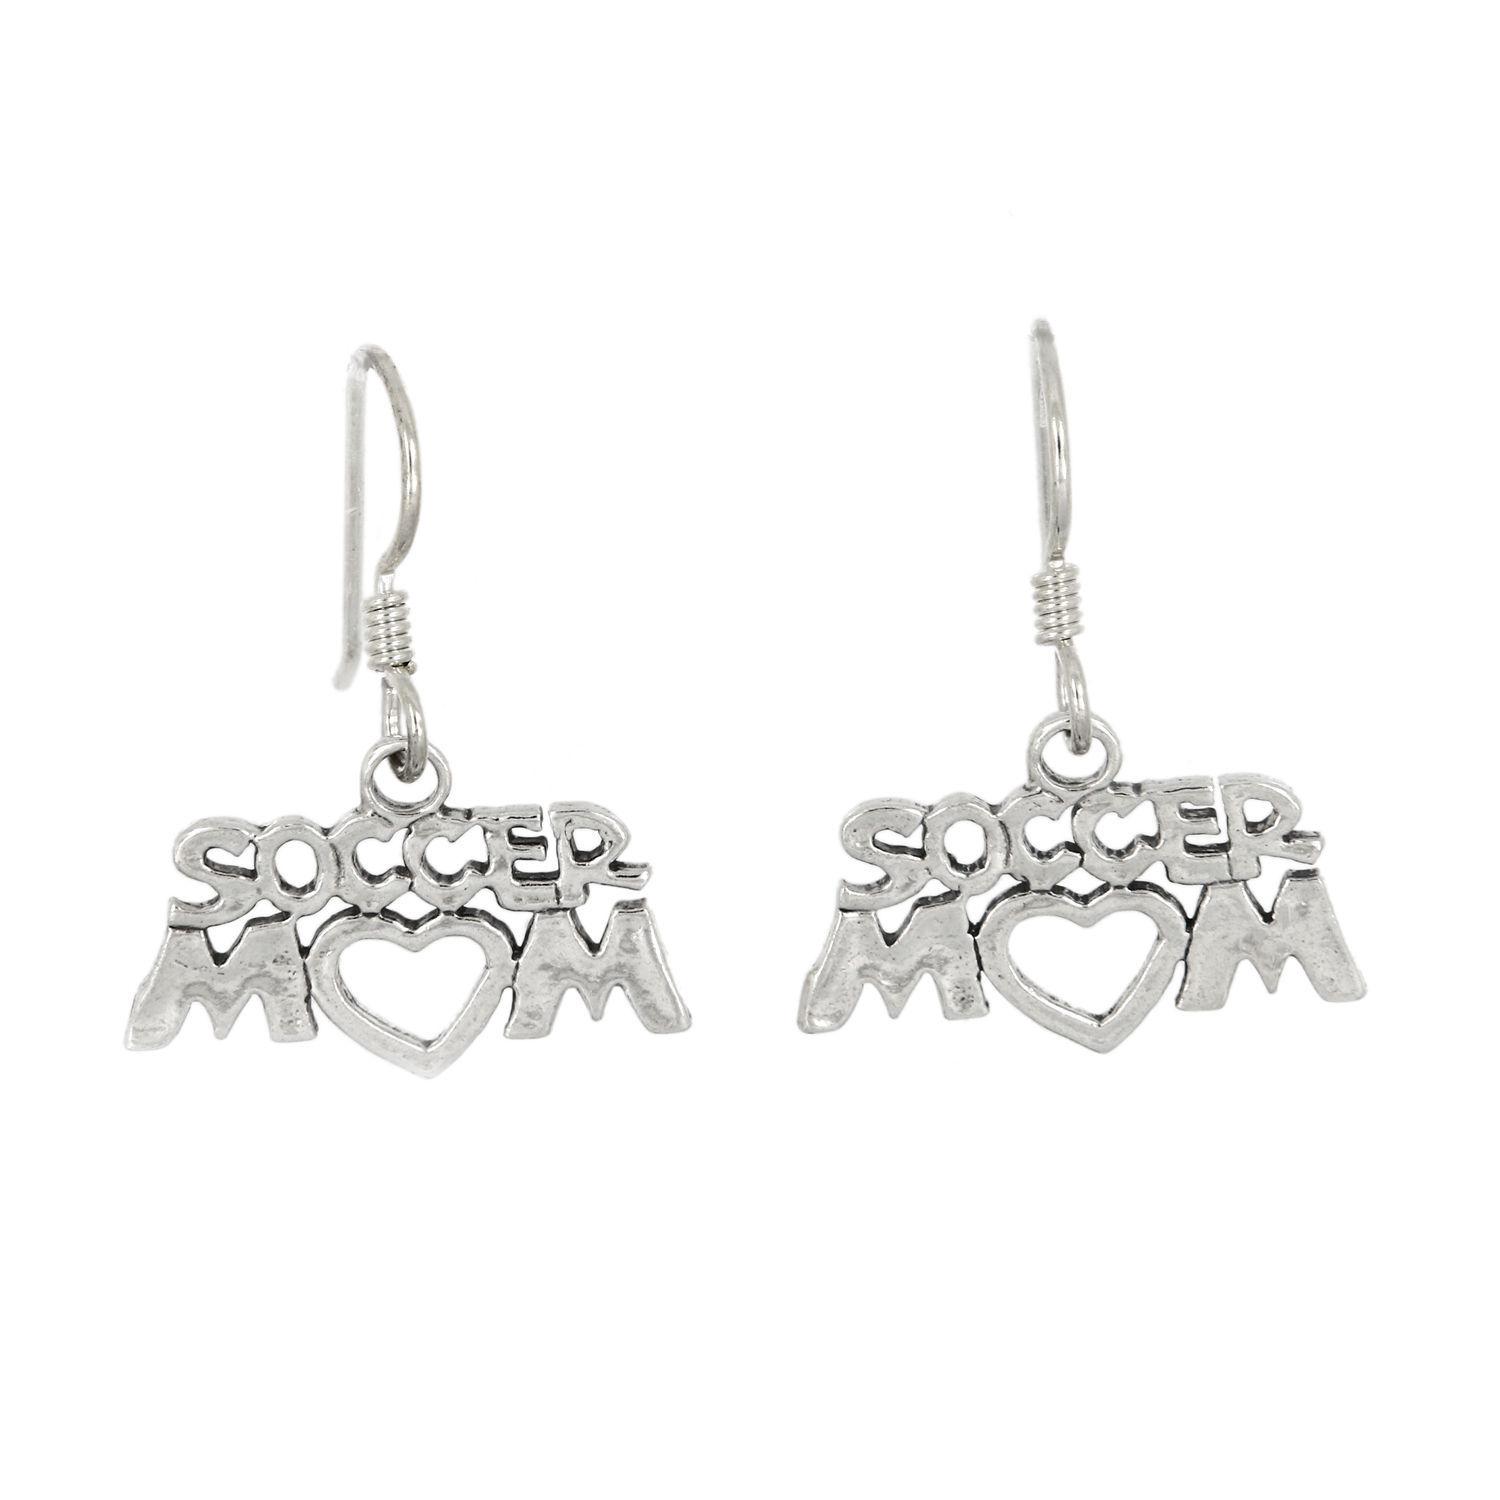 Primary image for STERLING SILVER SOCCER MOM EARRINGS